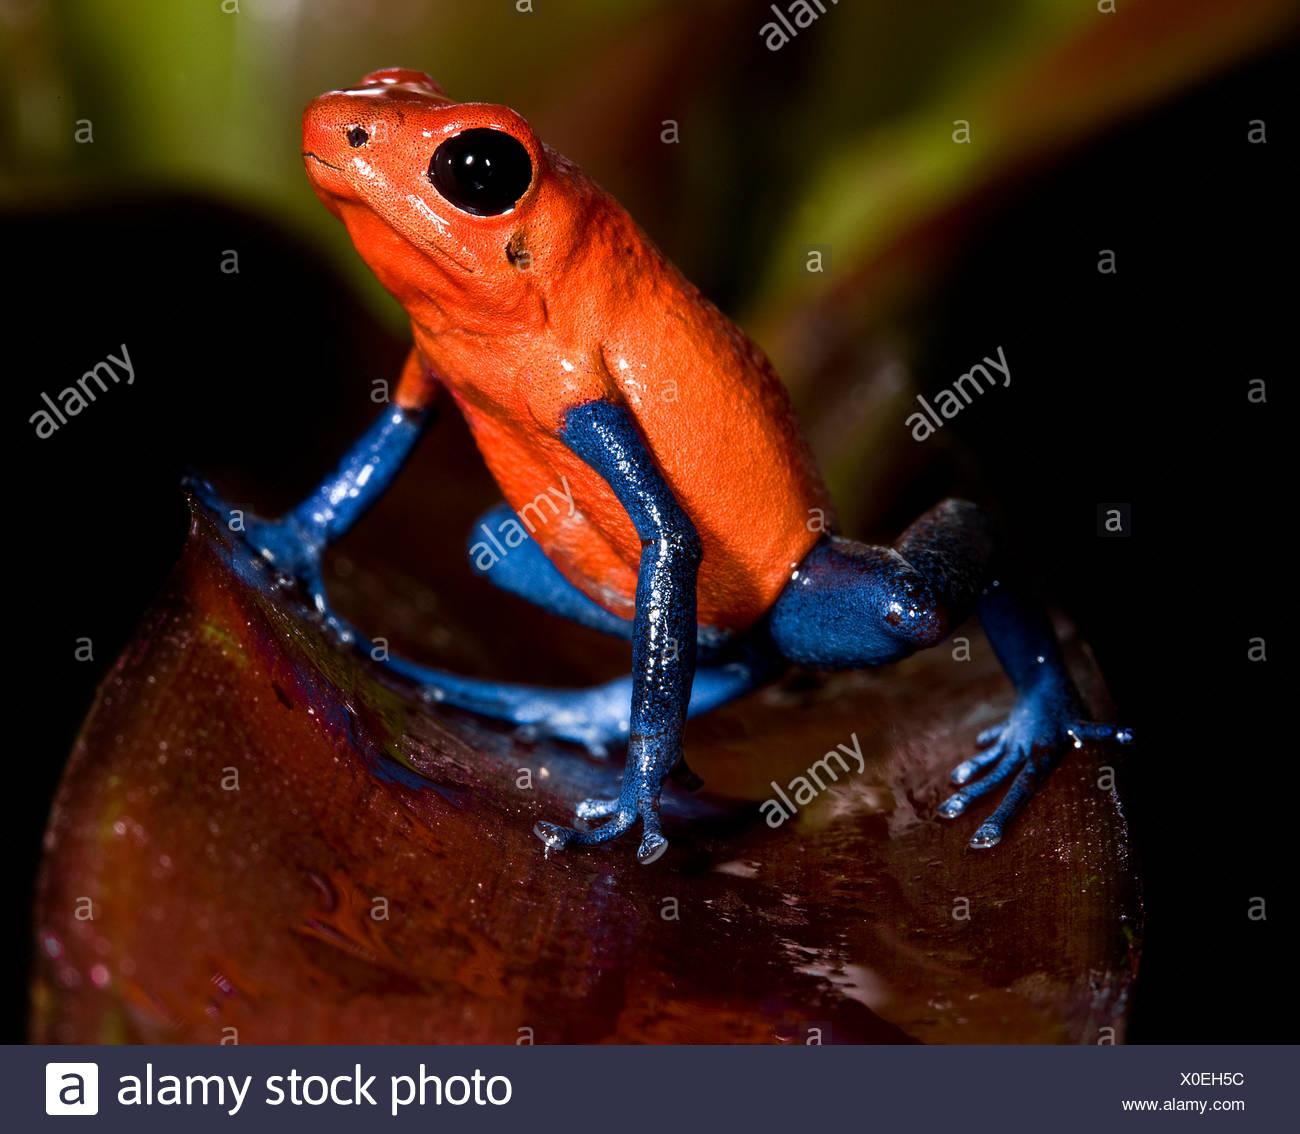 central america frog frogs - Stock Image